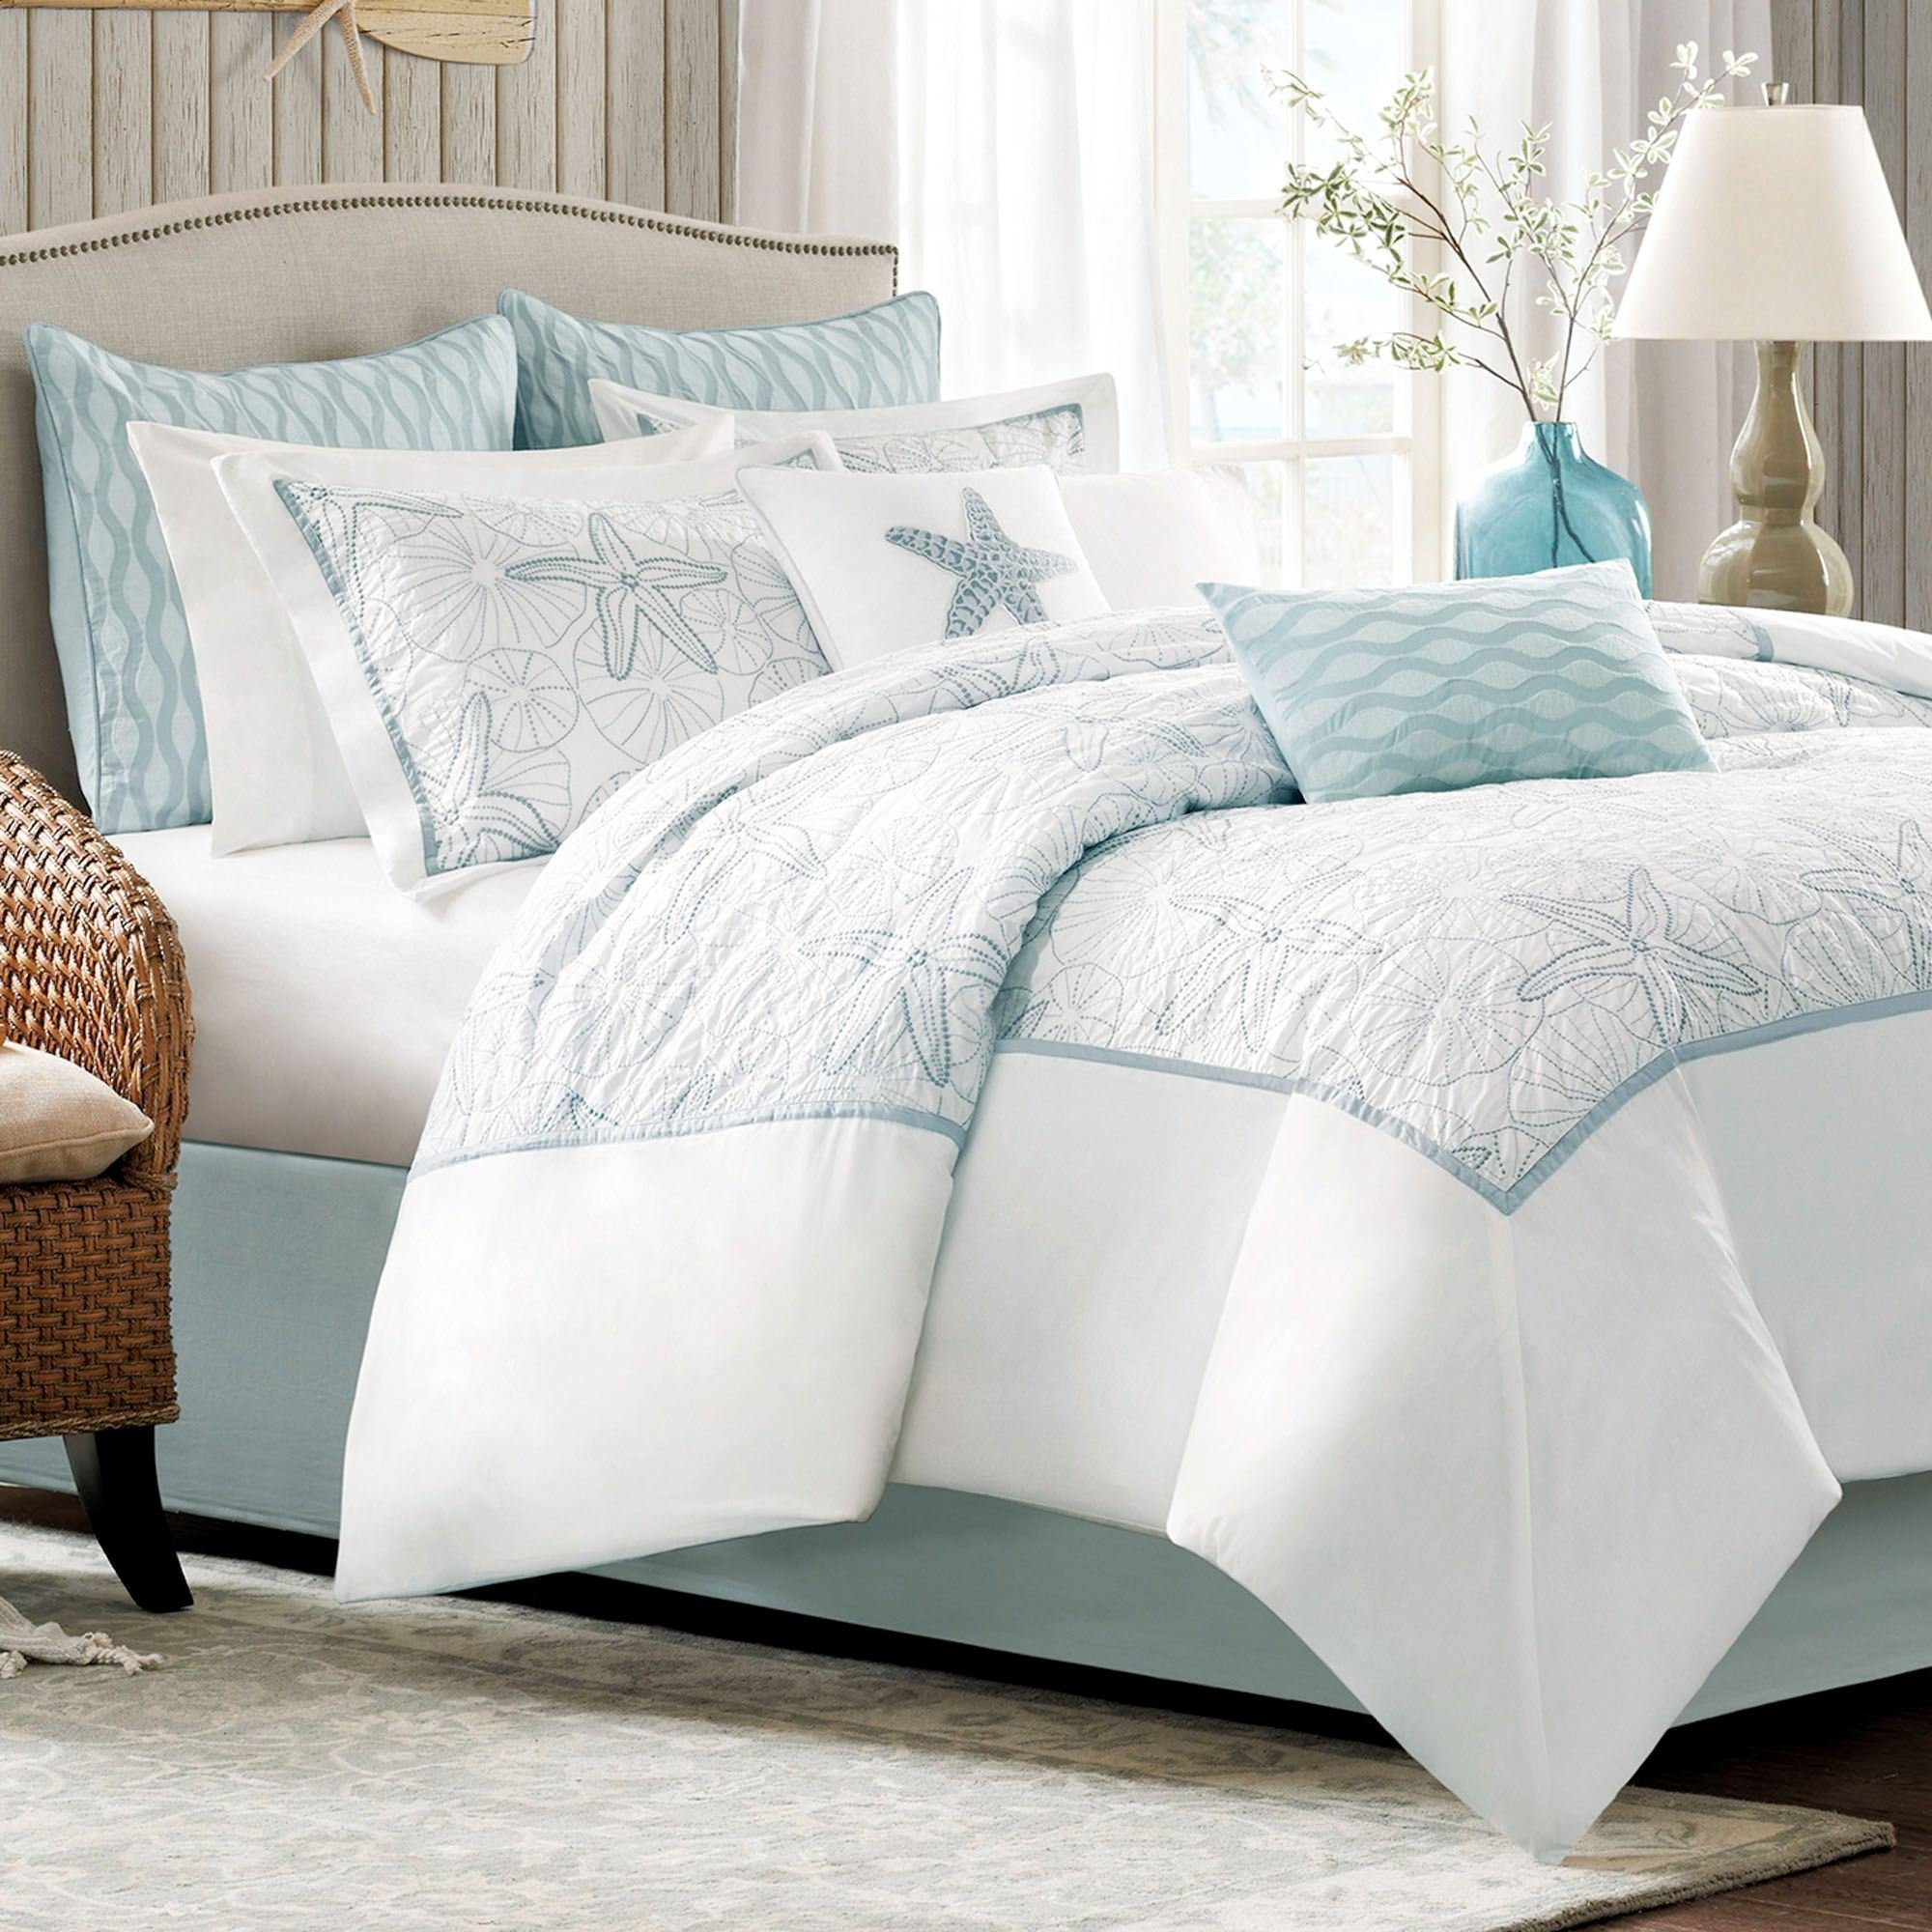 Best Maya Bay Embroidered Coastal Comforter Bedding With Pictures